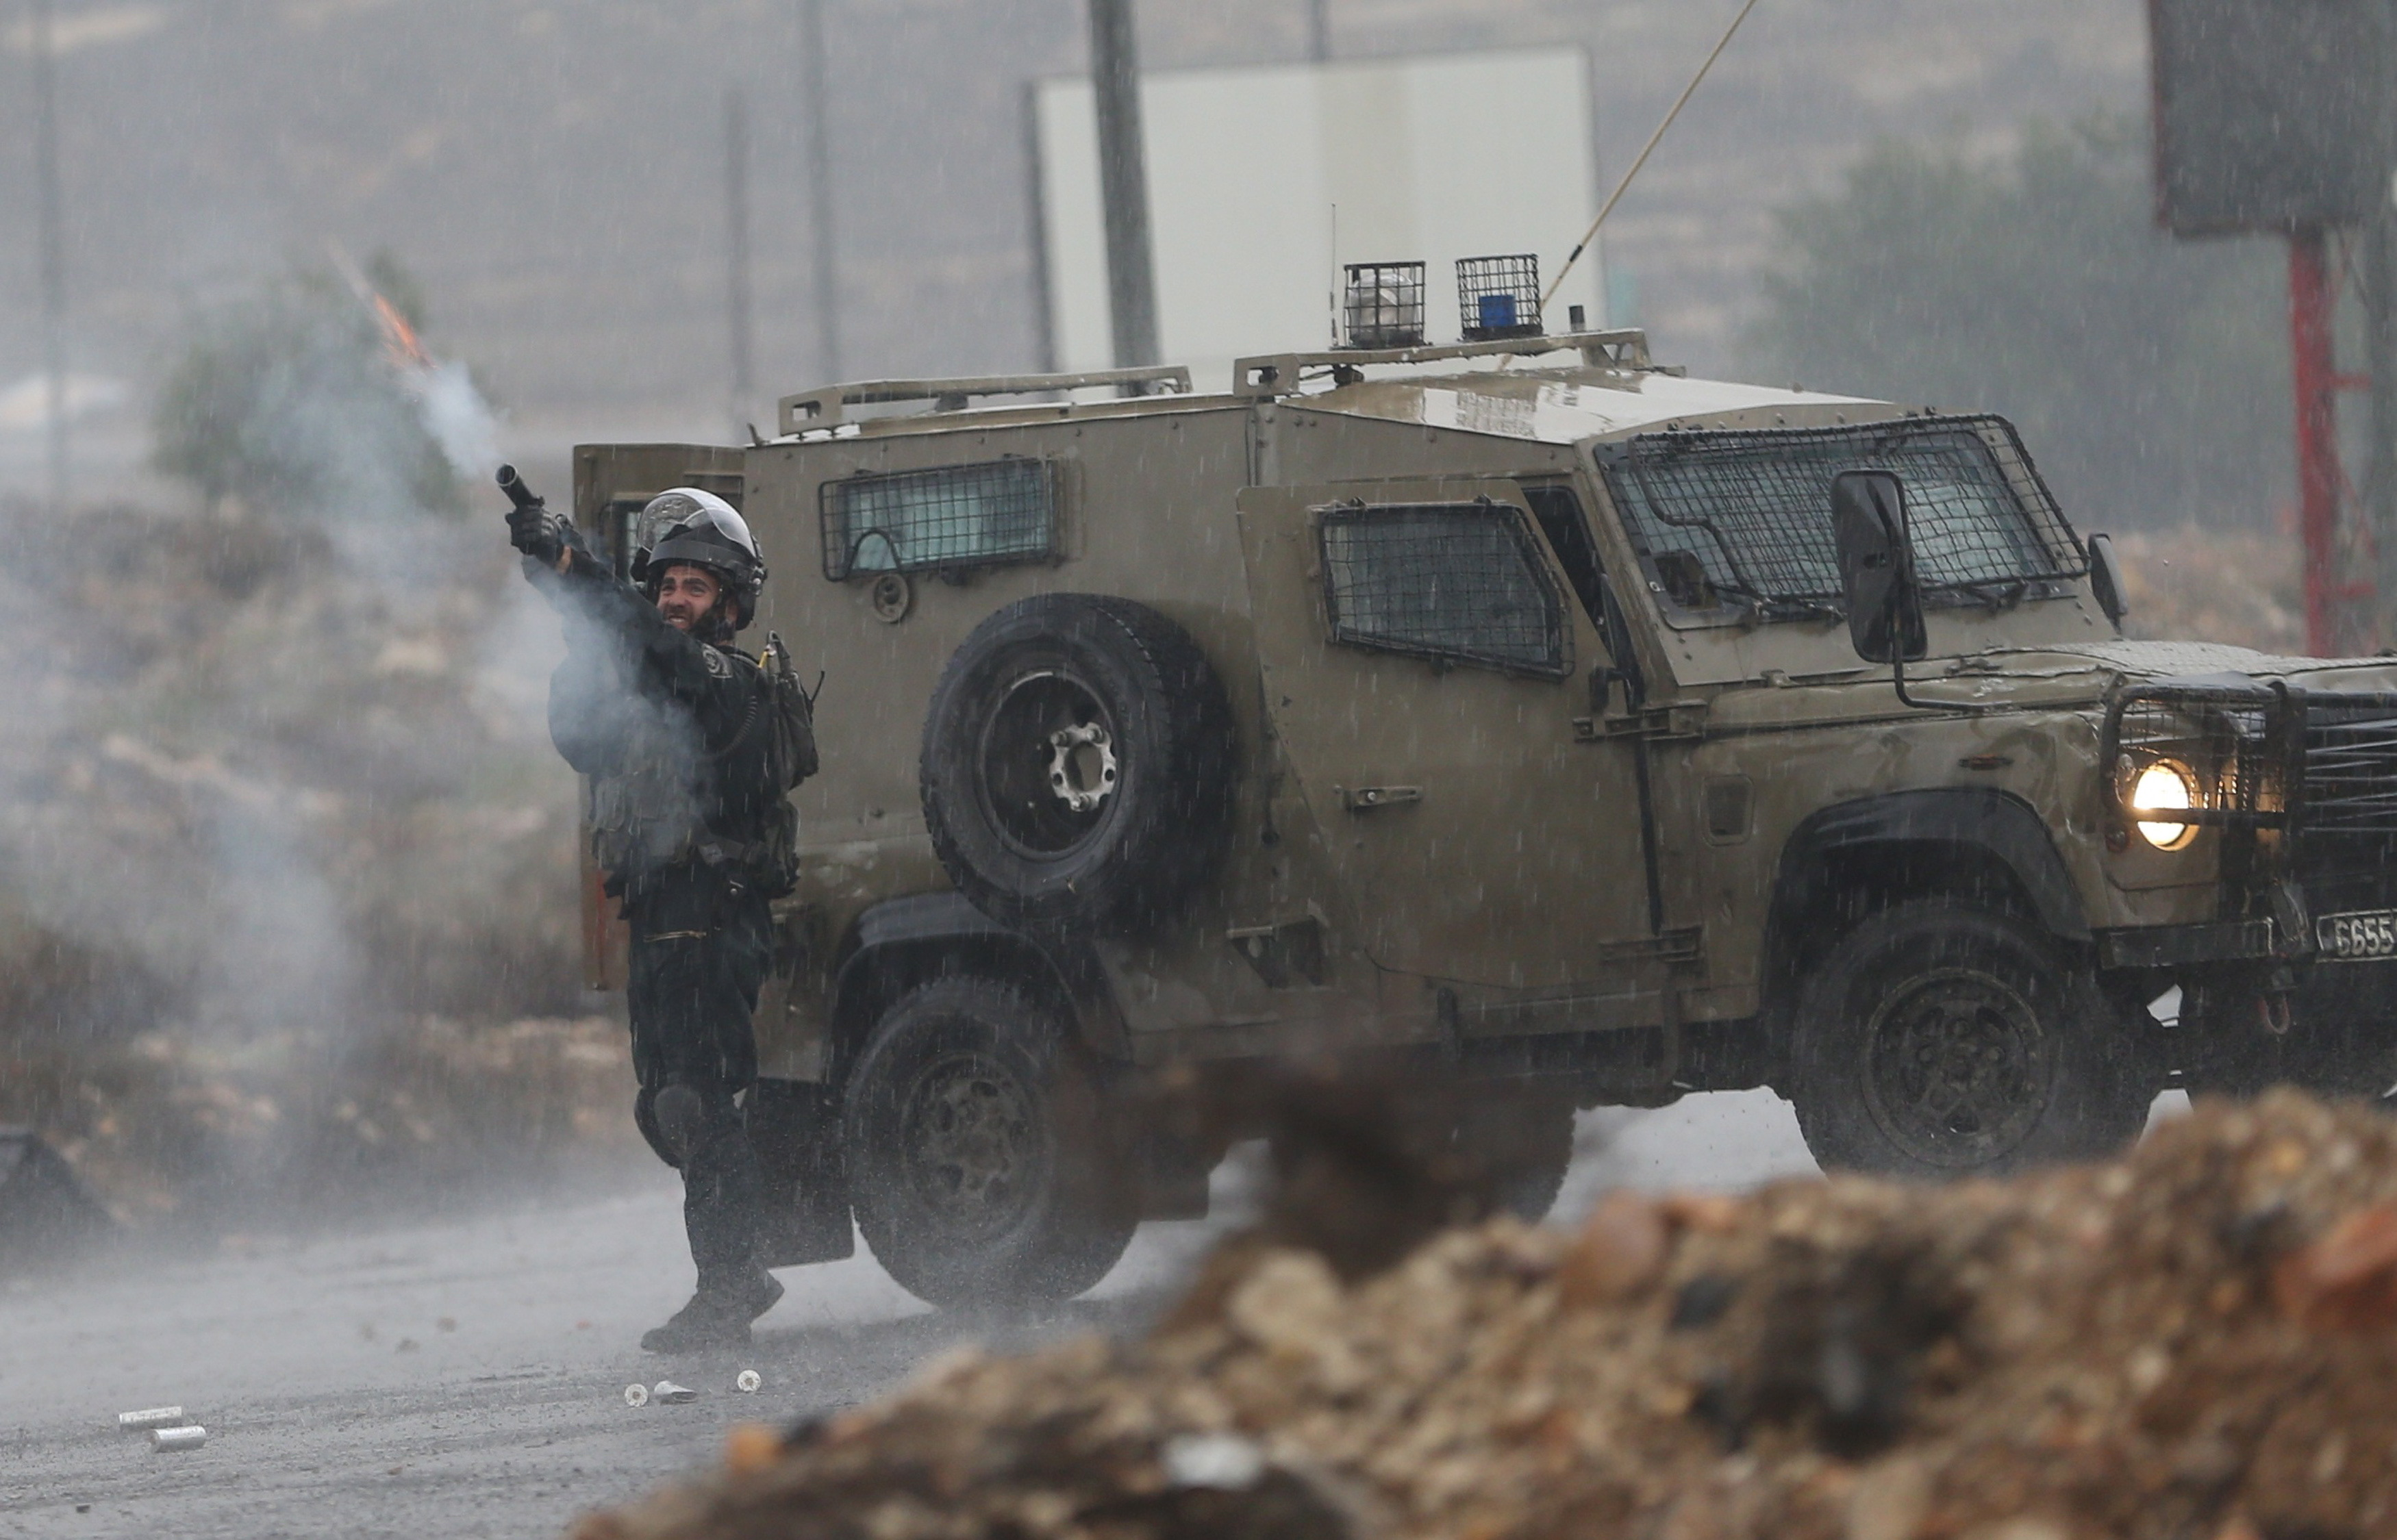 An Israeli border police officer fires tear a gas canister during clashes with Palestinian protesters near the Jewish settlement of Bet El, near the West Bank city of Ramallah, Nov. 5, 2015.